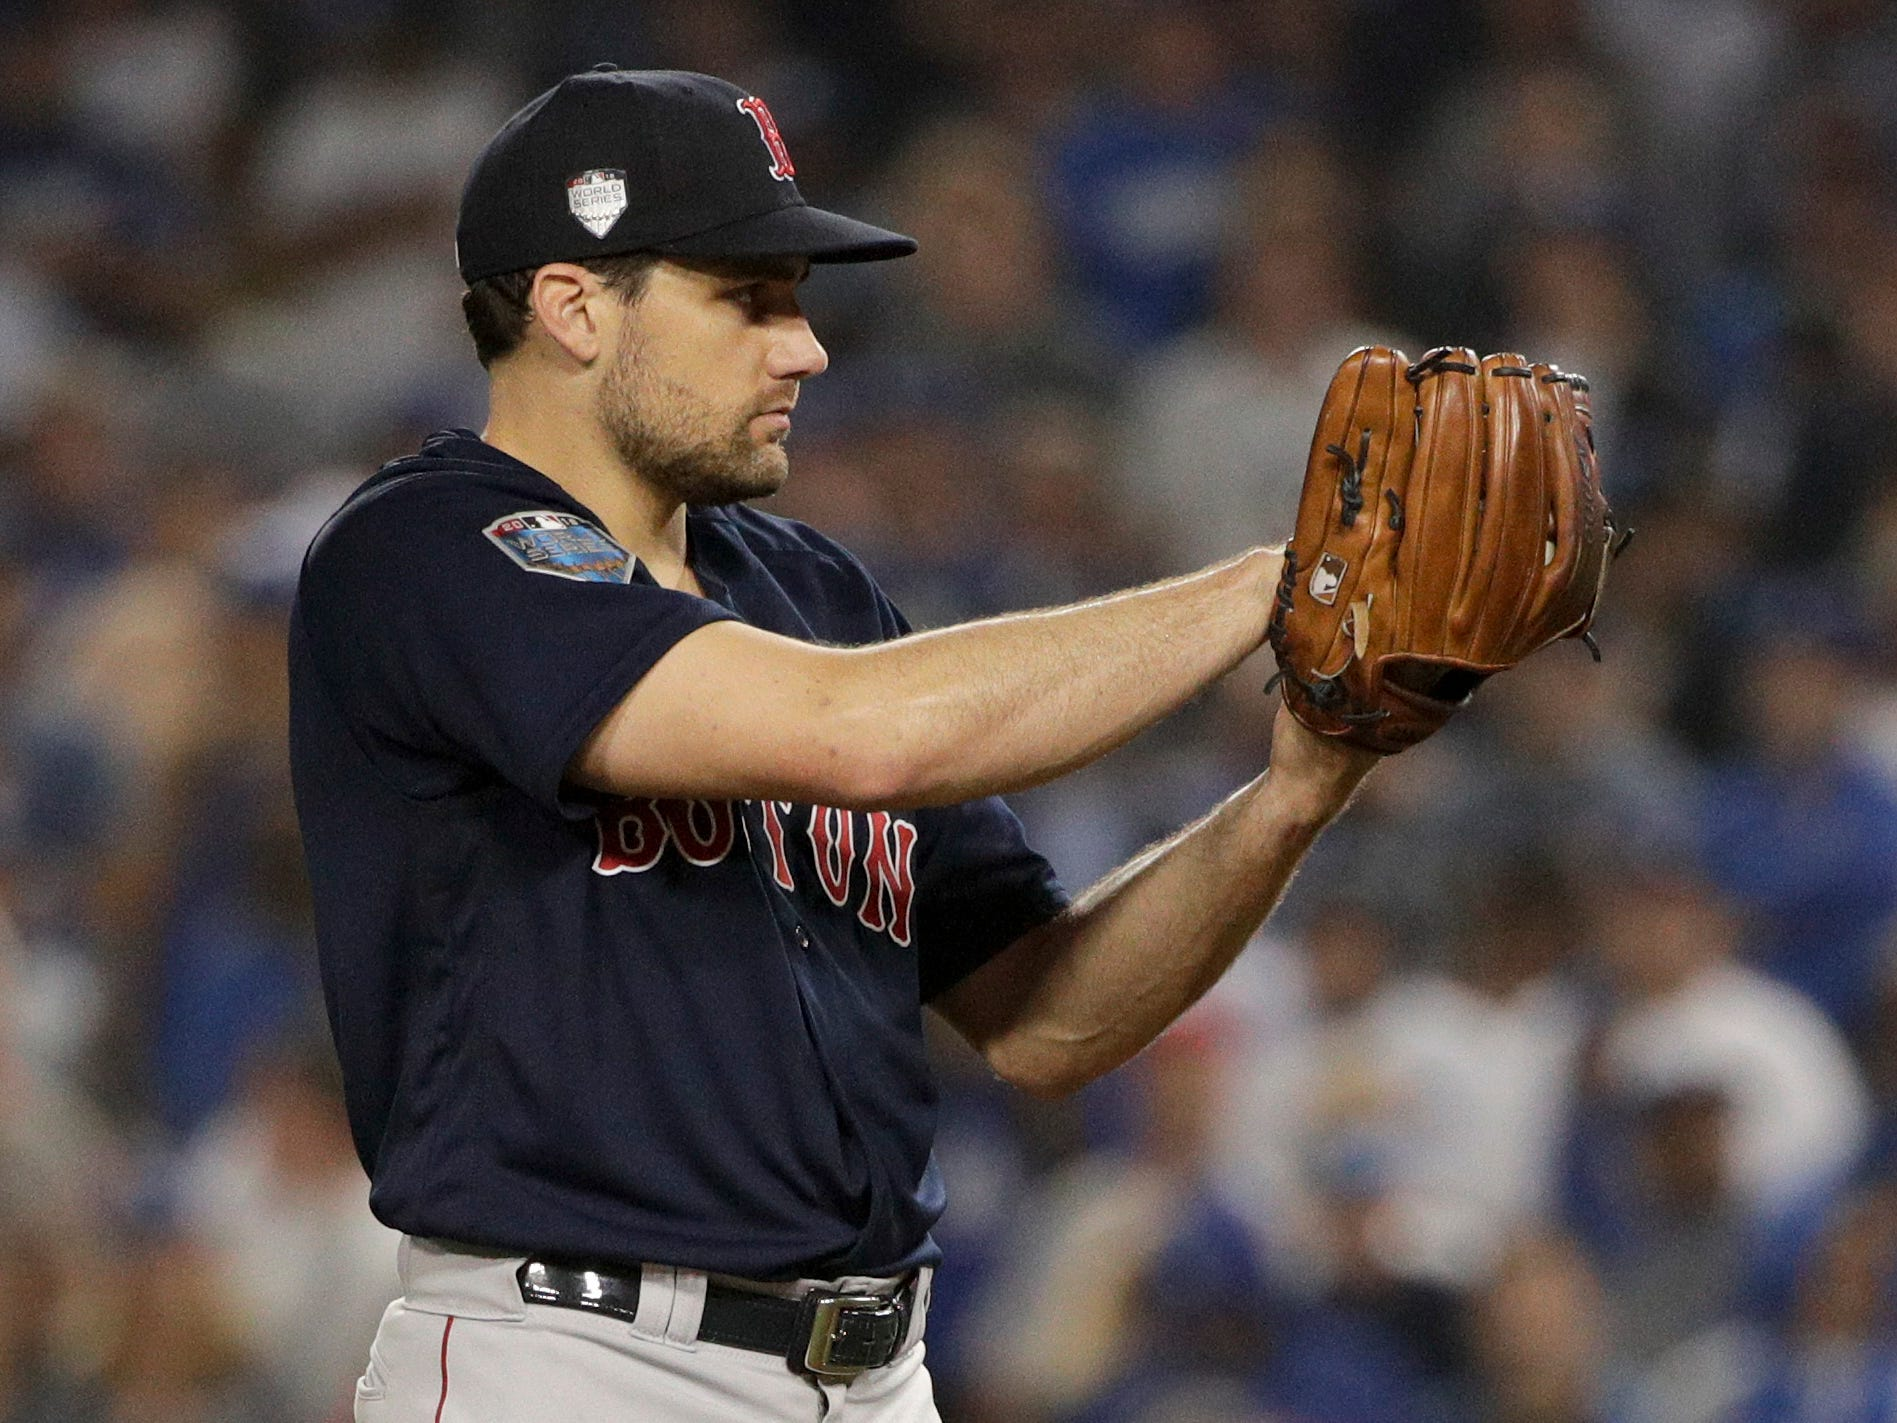 7. Nathan Eovaldi, SP, 29: The right-hander's stock skyrocketed with a brilliant showing for the World Series-champion Red Sox, though some worry his workload in the playoffs was ill-advised. Prediction: Red Sox, four years, $45 million. UPDATE: Red Sox, four years, $67.5 million.